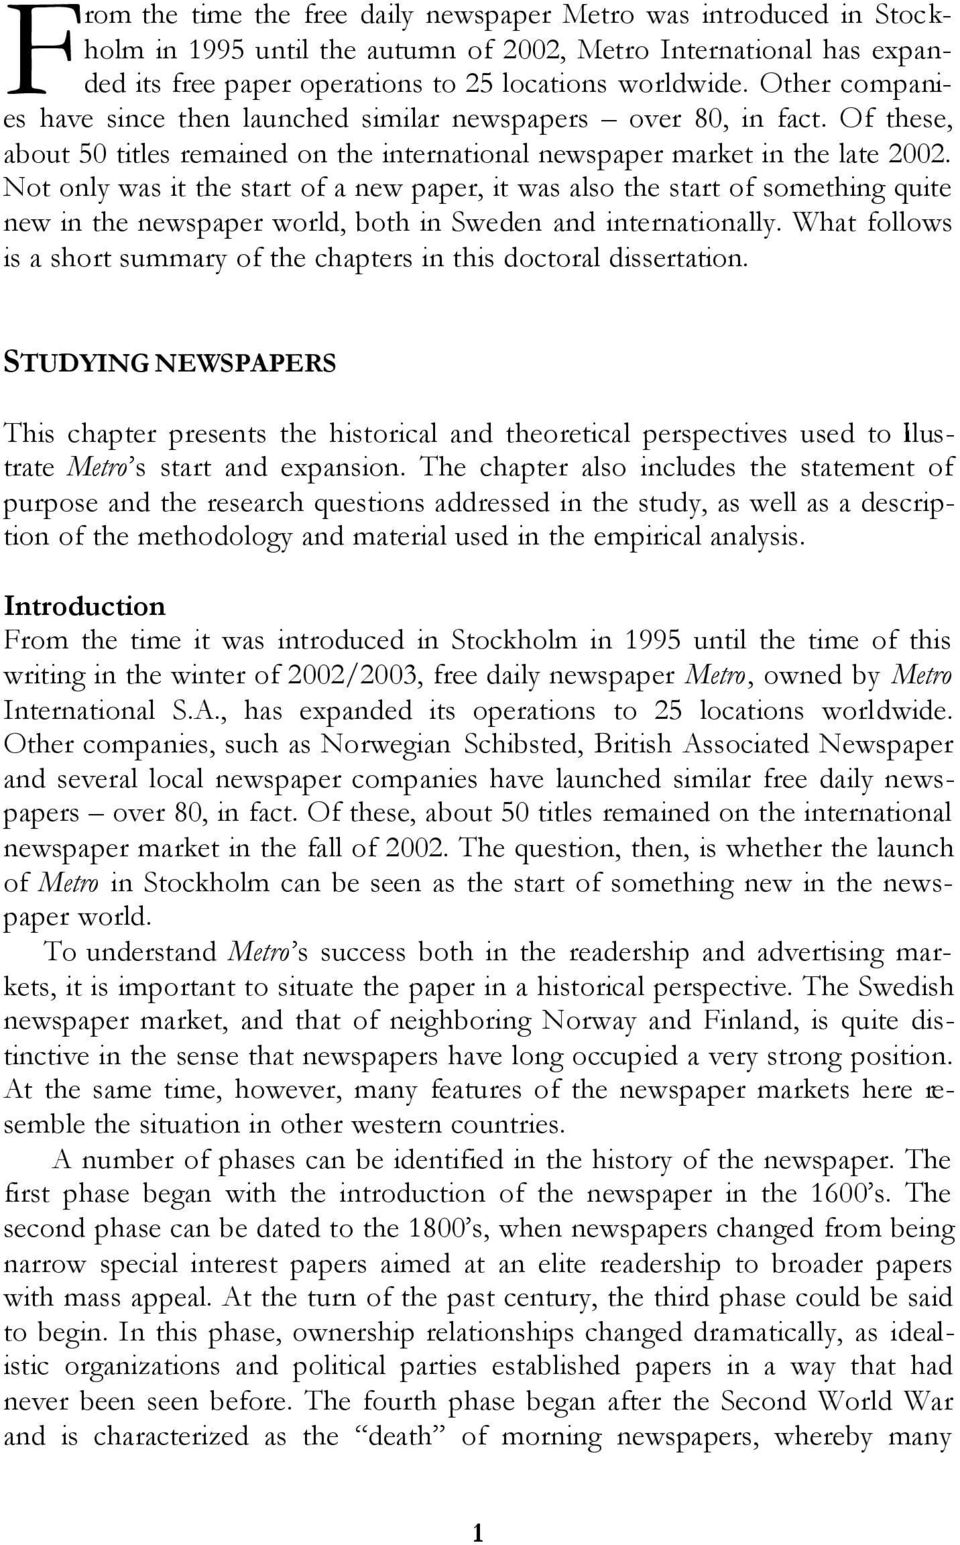 Not only was it the start of a new paper, it was also the start of something quite new in the newspaper world, both in Sweden and internationally.